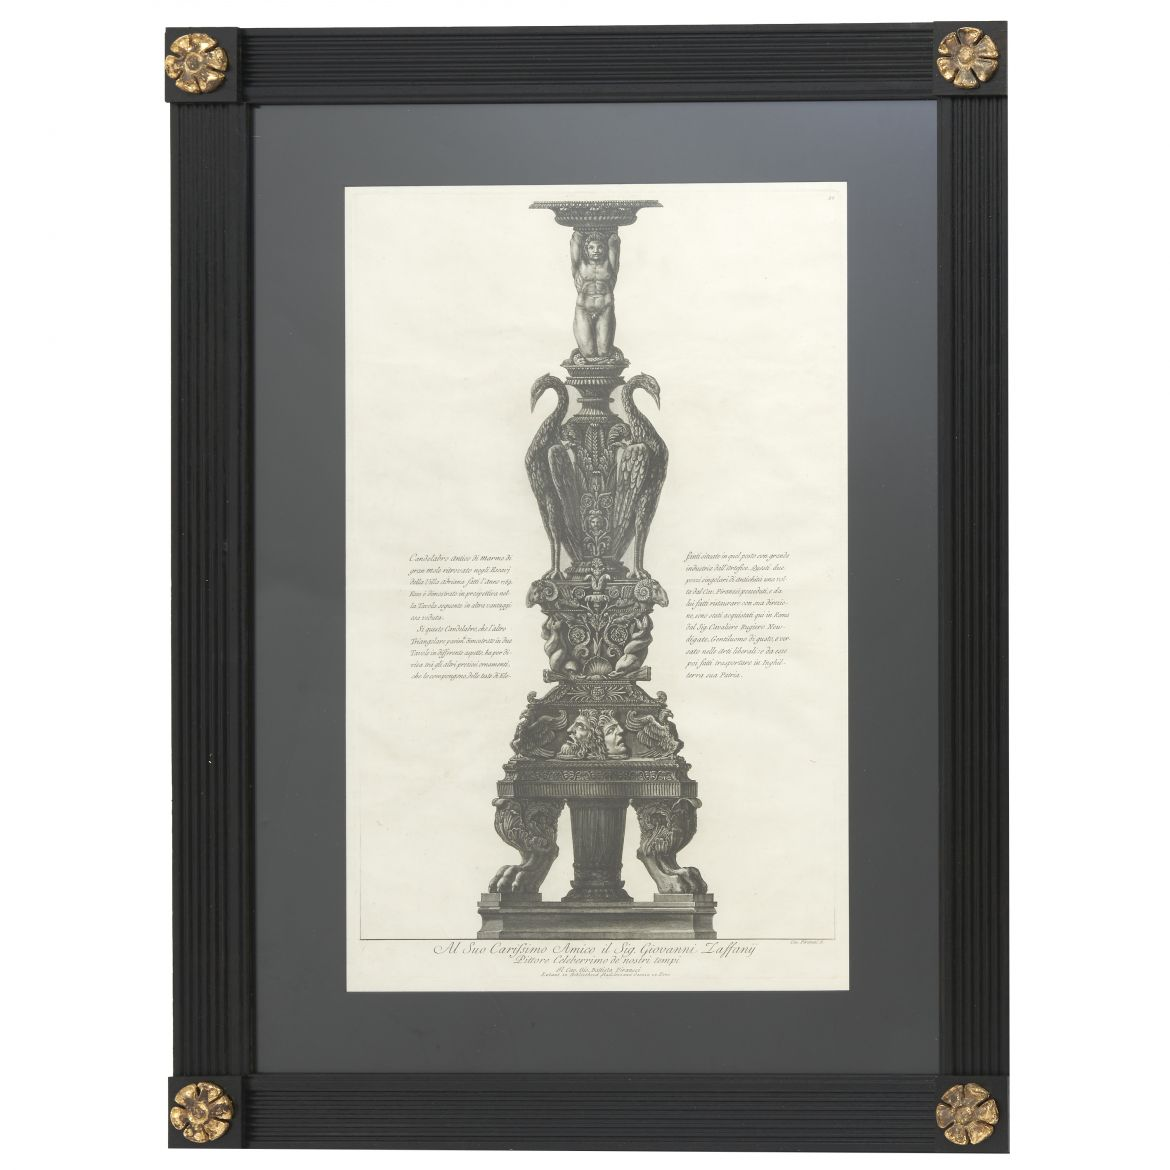 Highly Carved Candelabrum Piranesi Etching